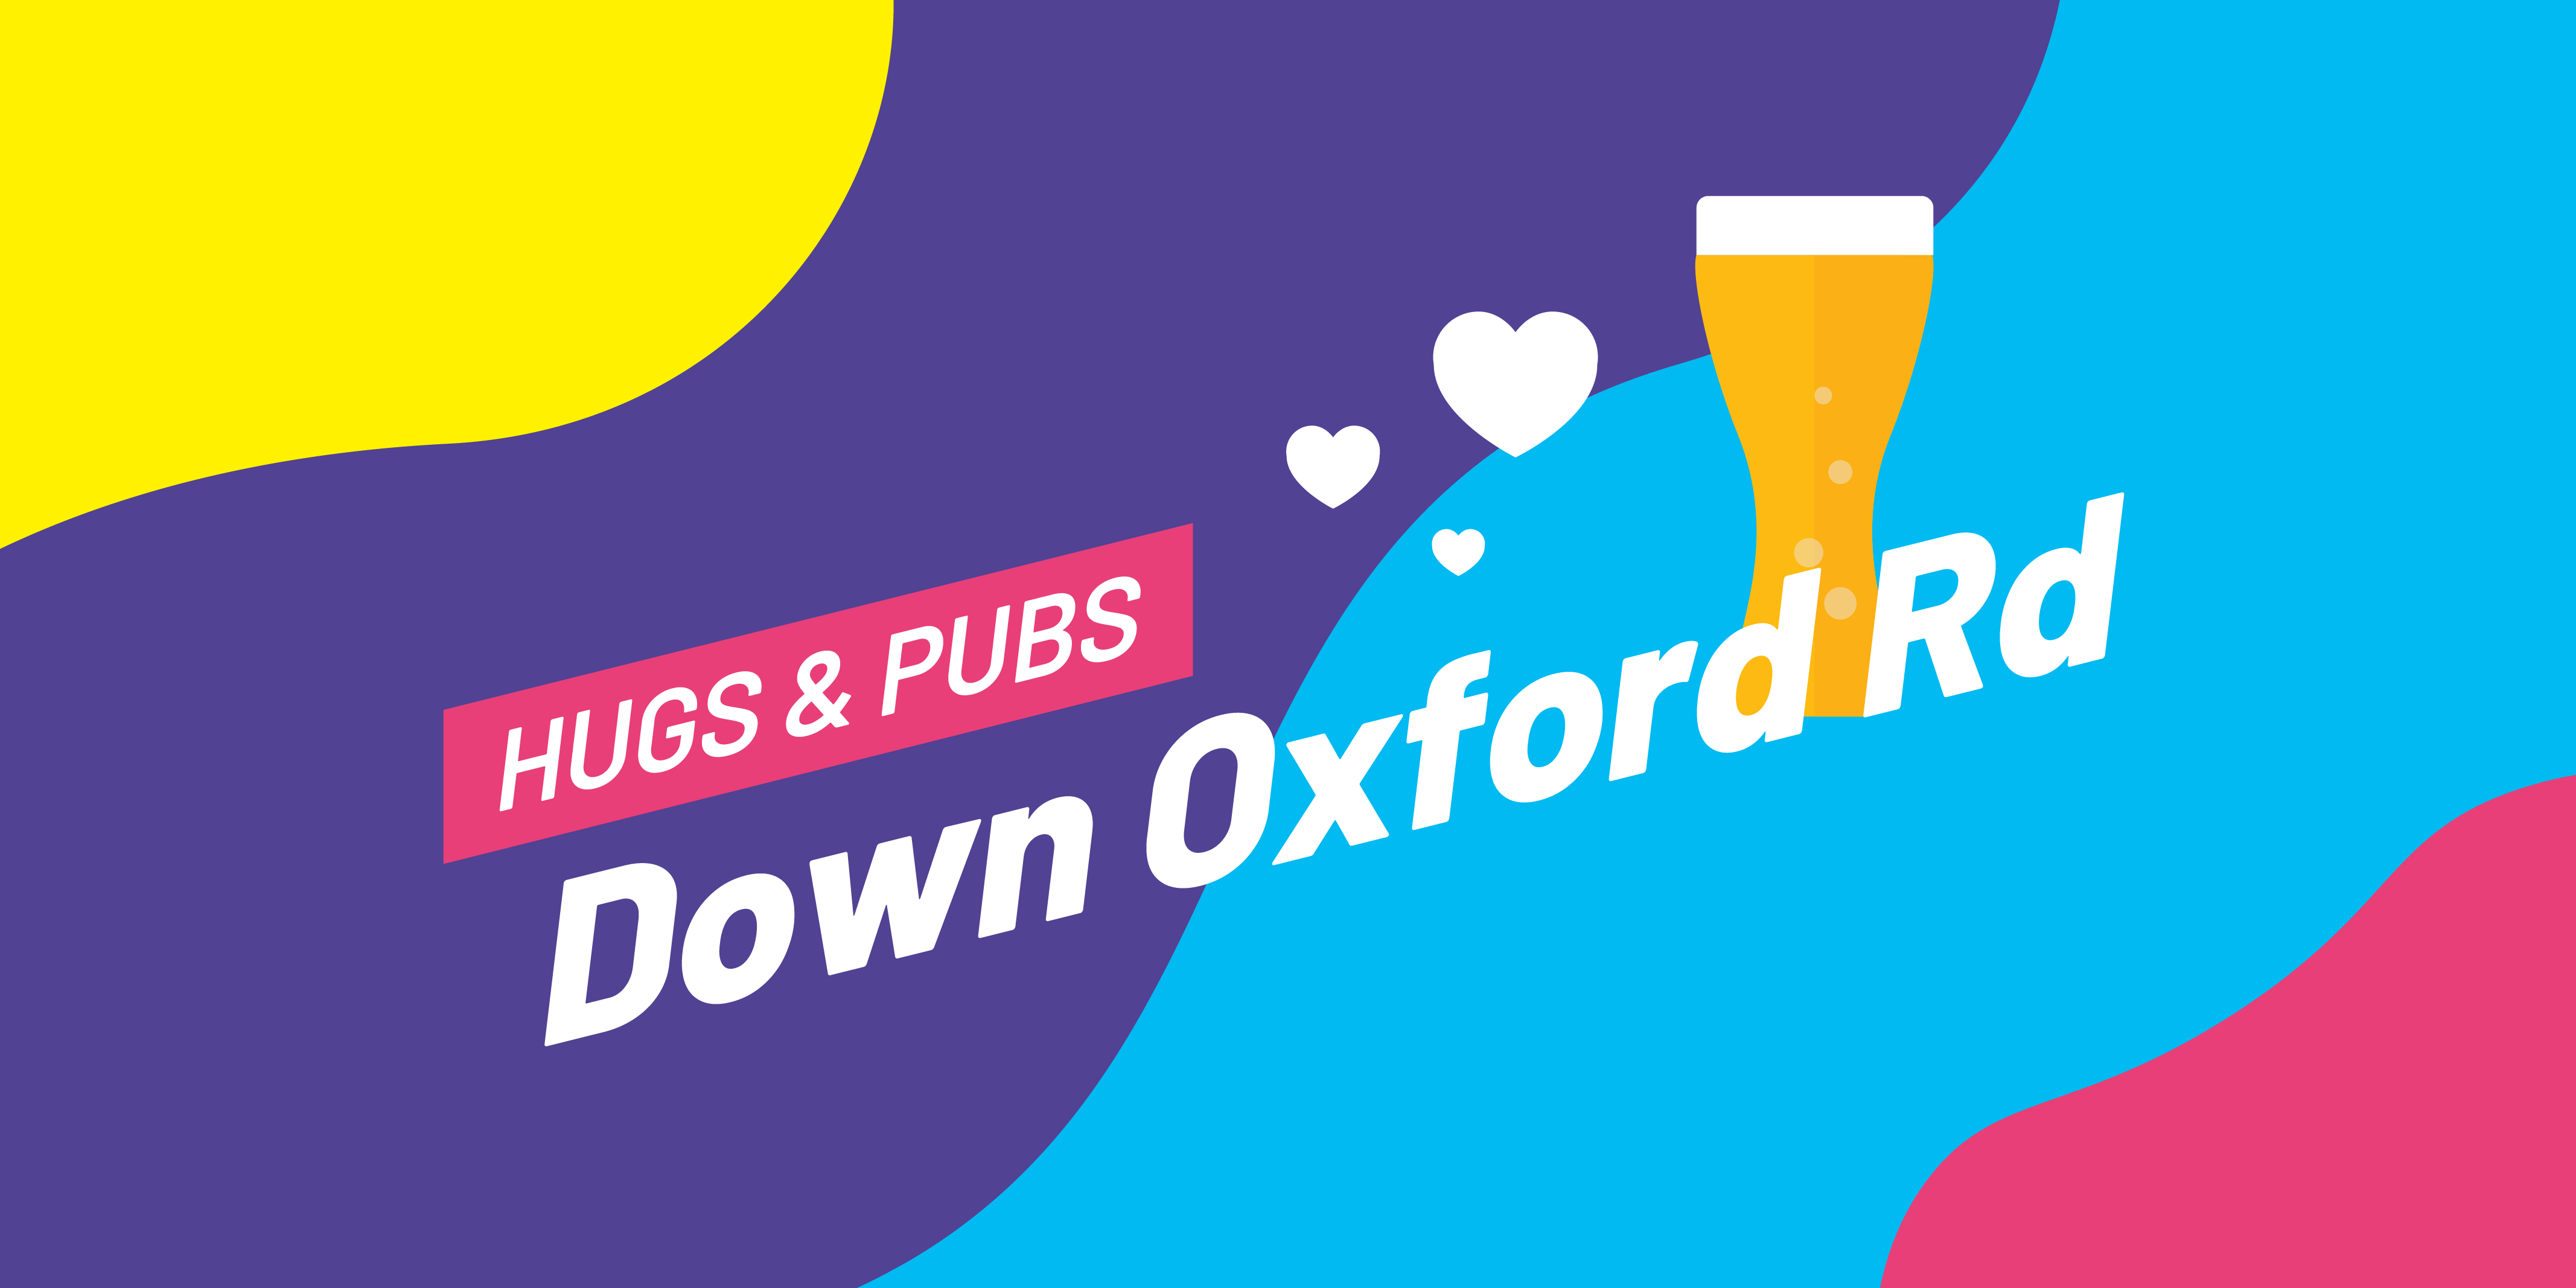 Hugs and pubs